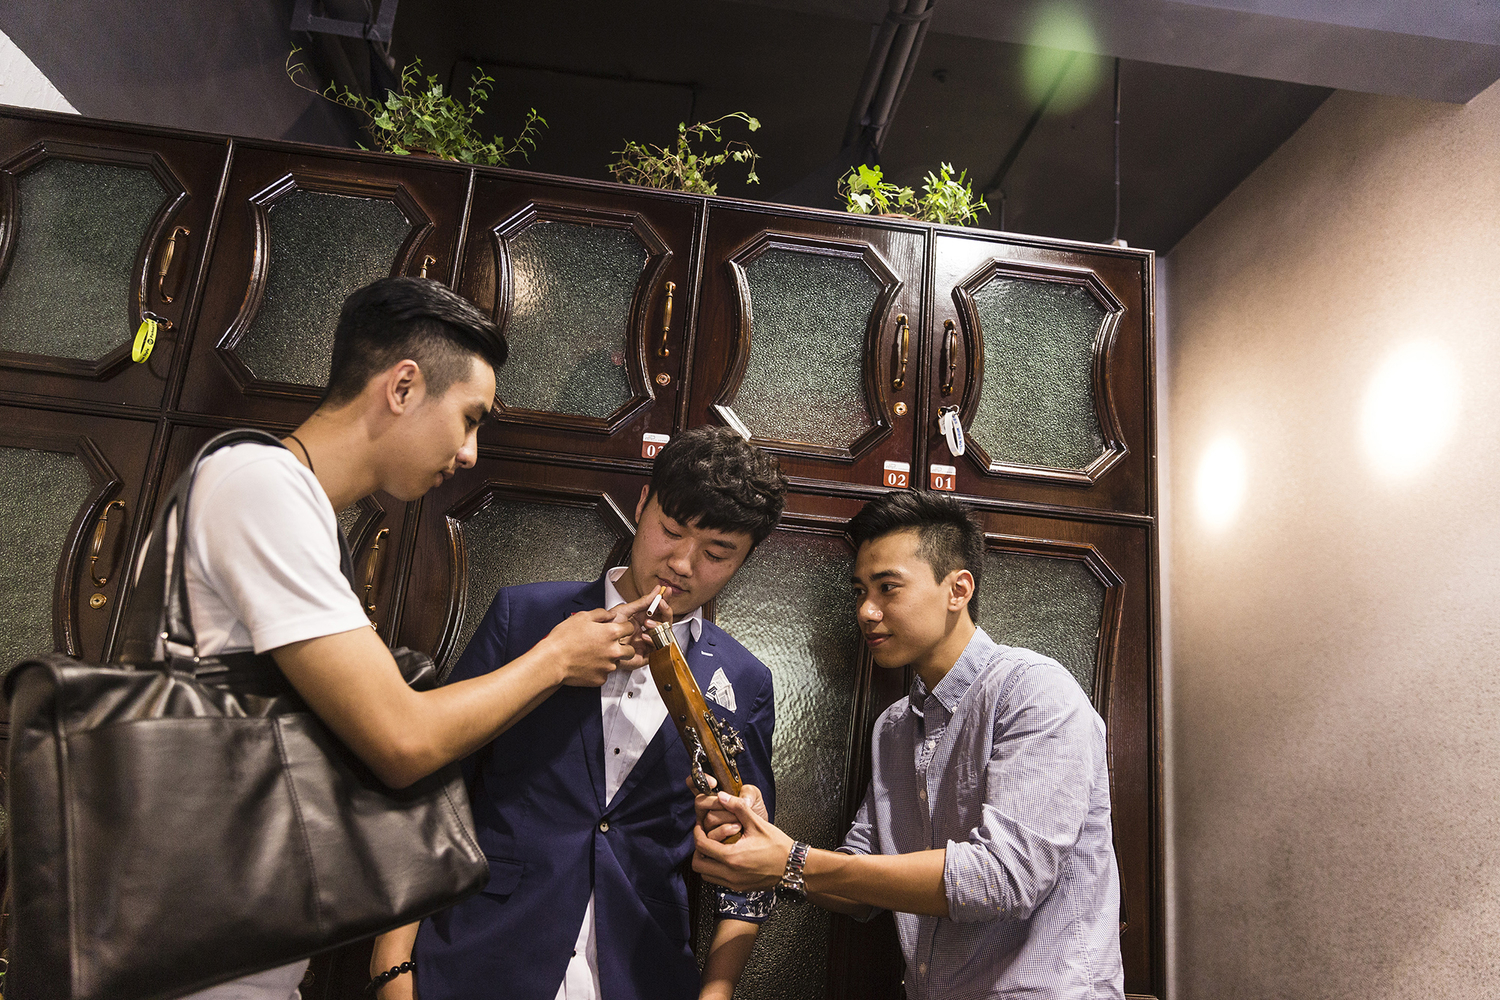 After updating his hairstyle, Jiang (center) poses for new profile photos for his social media accounts, May 15, 2015. Improving one's online presence is an important part of Puamap's course.